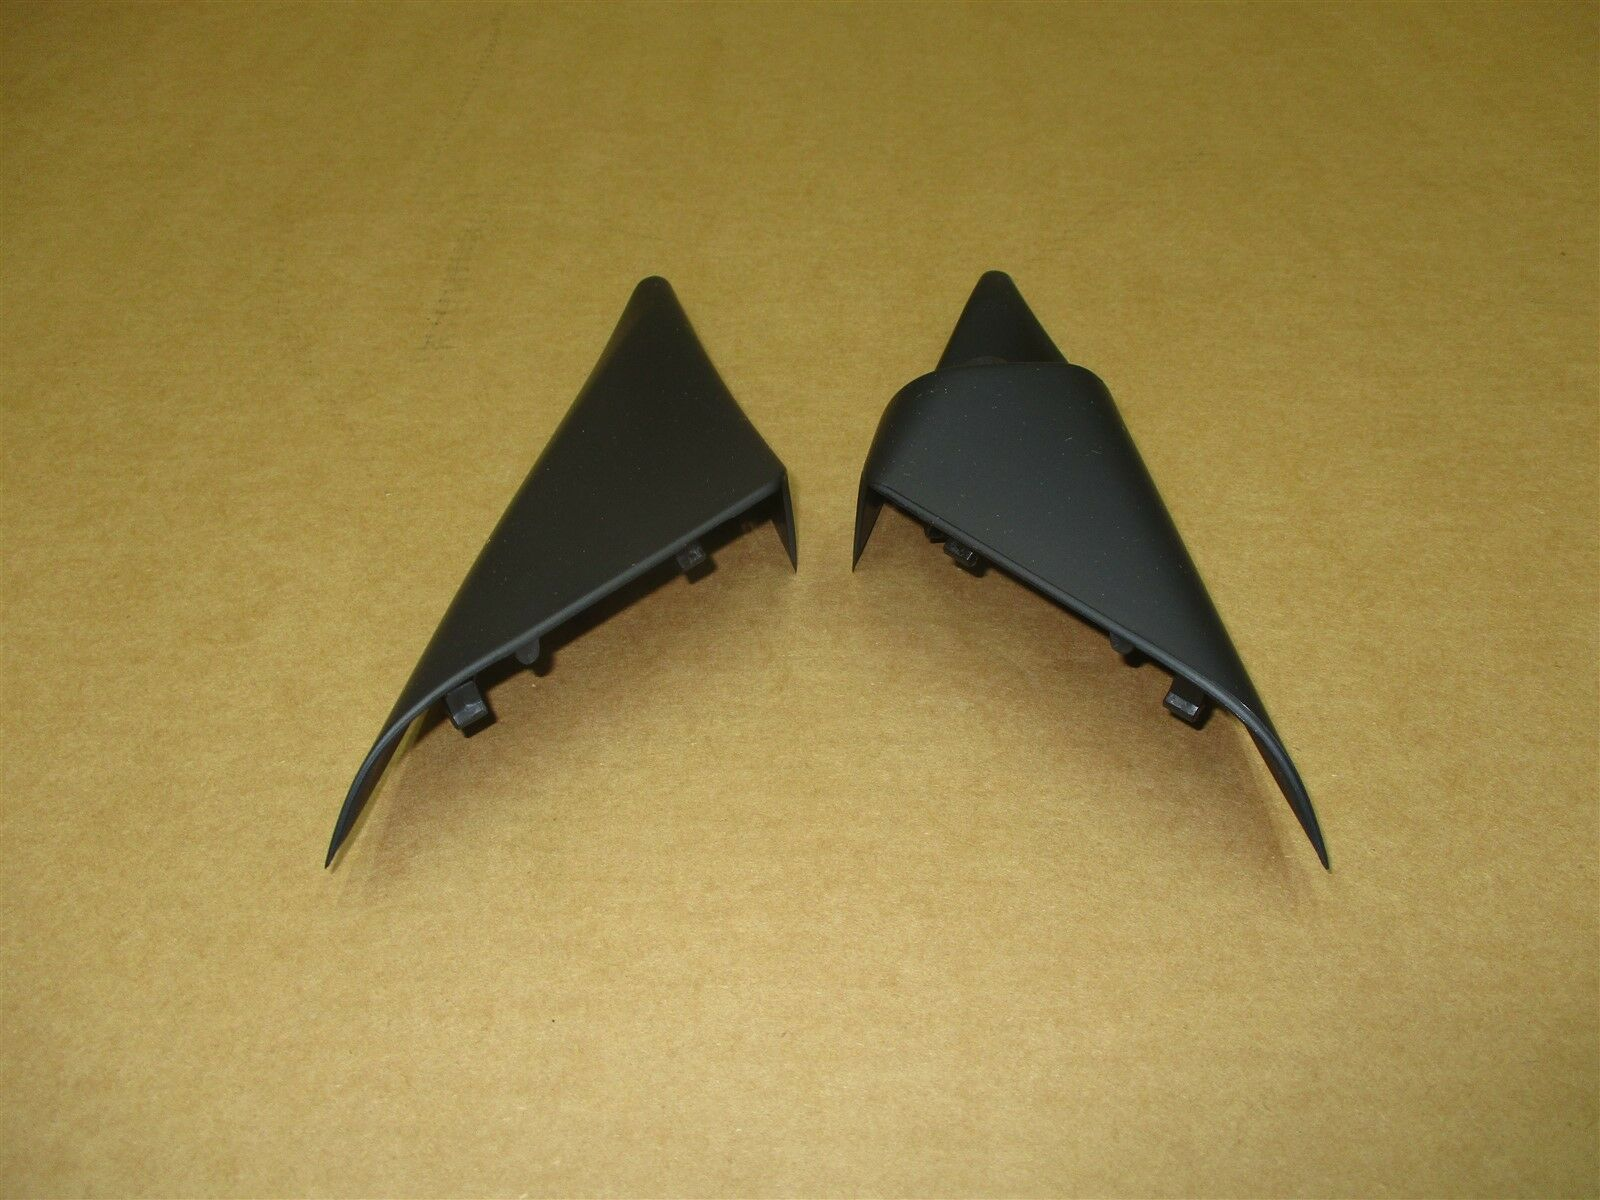 06 Cayman S RWD Porsche 987 INTERIOR TRIANGLE MIRROR TRIMS 99755568602 23,094